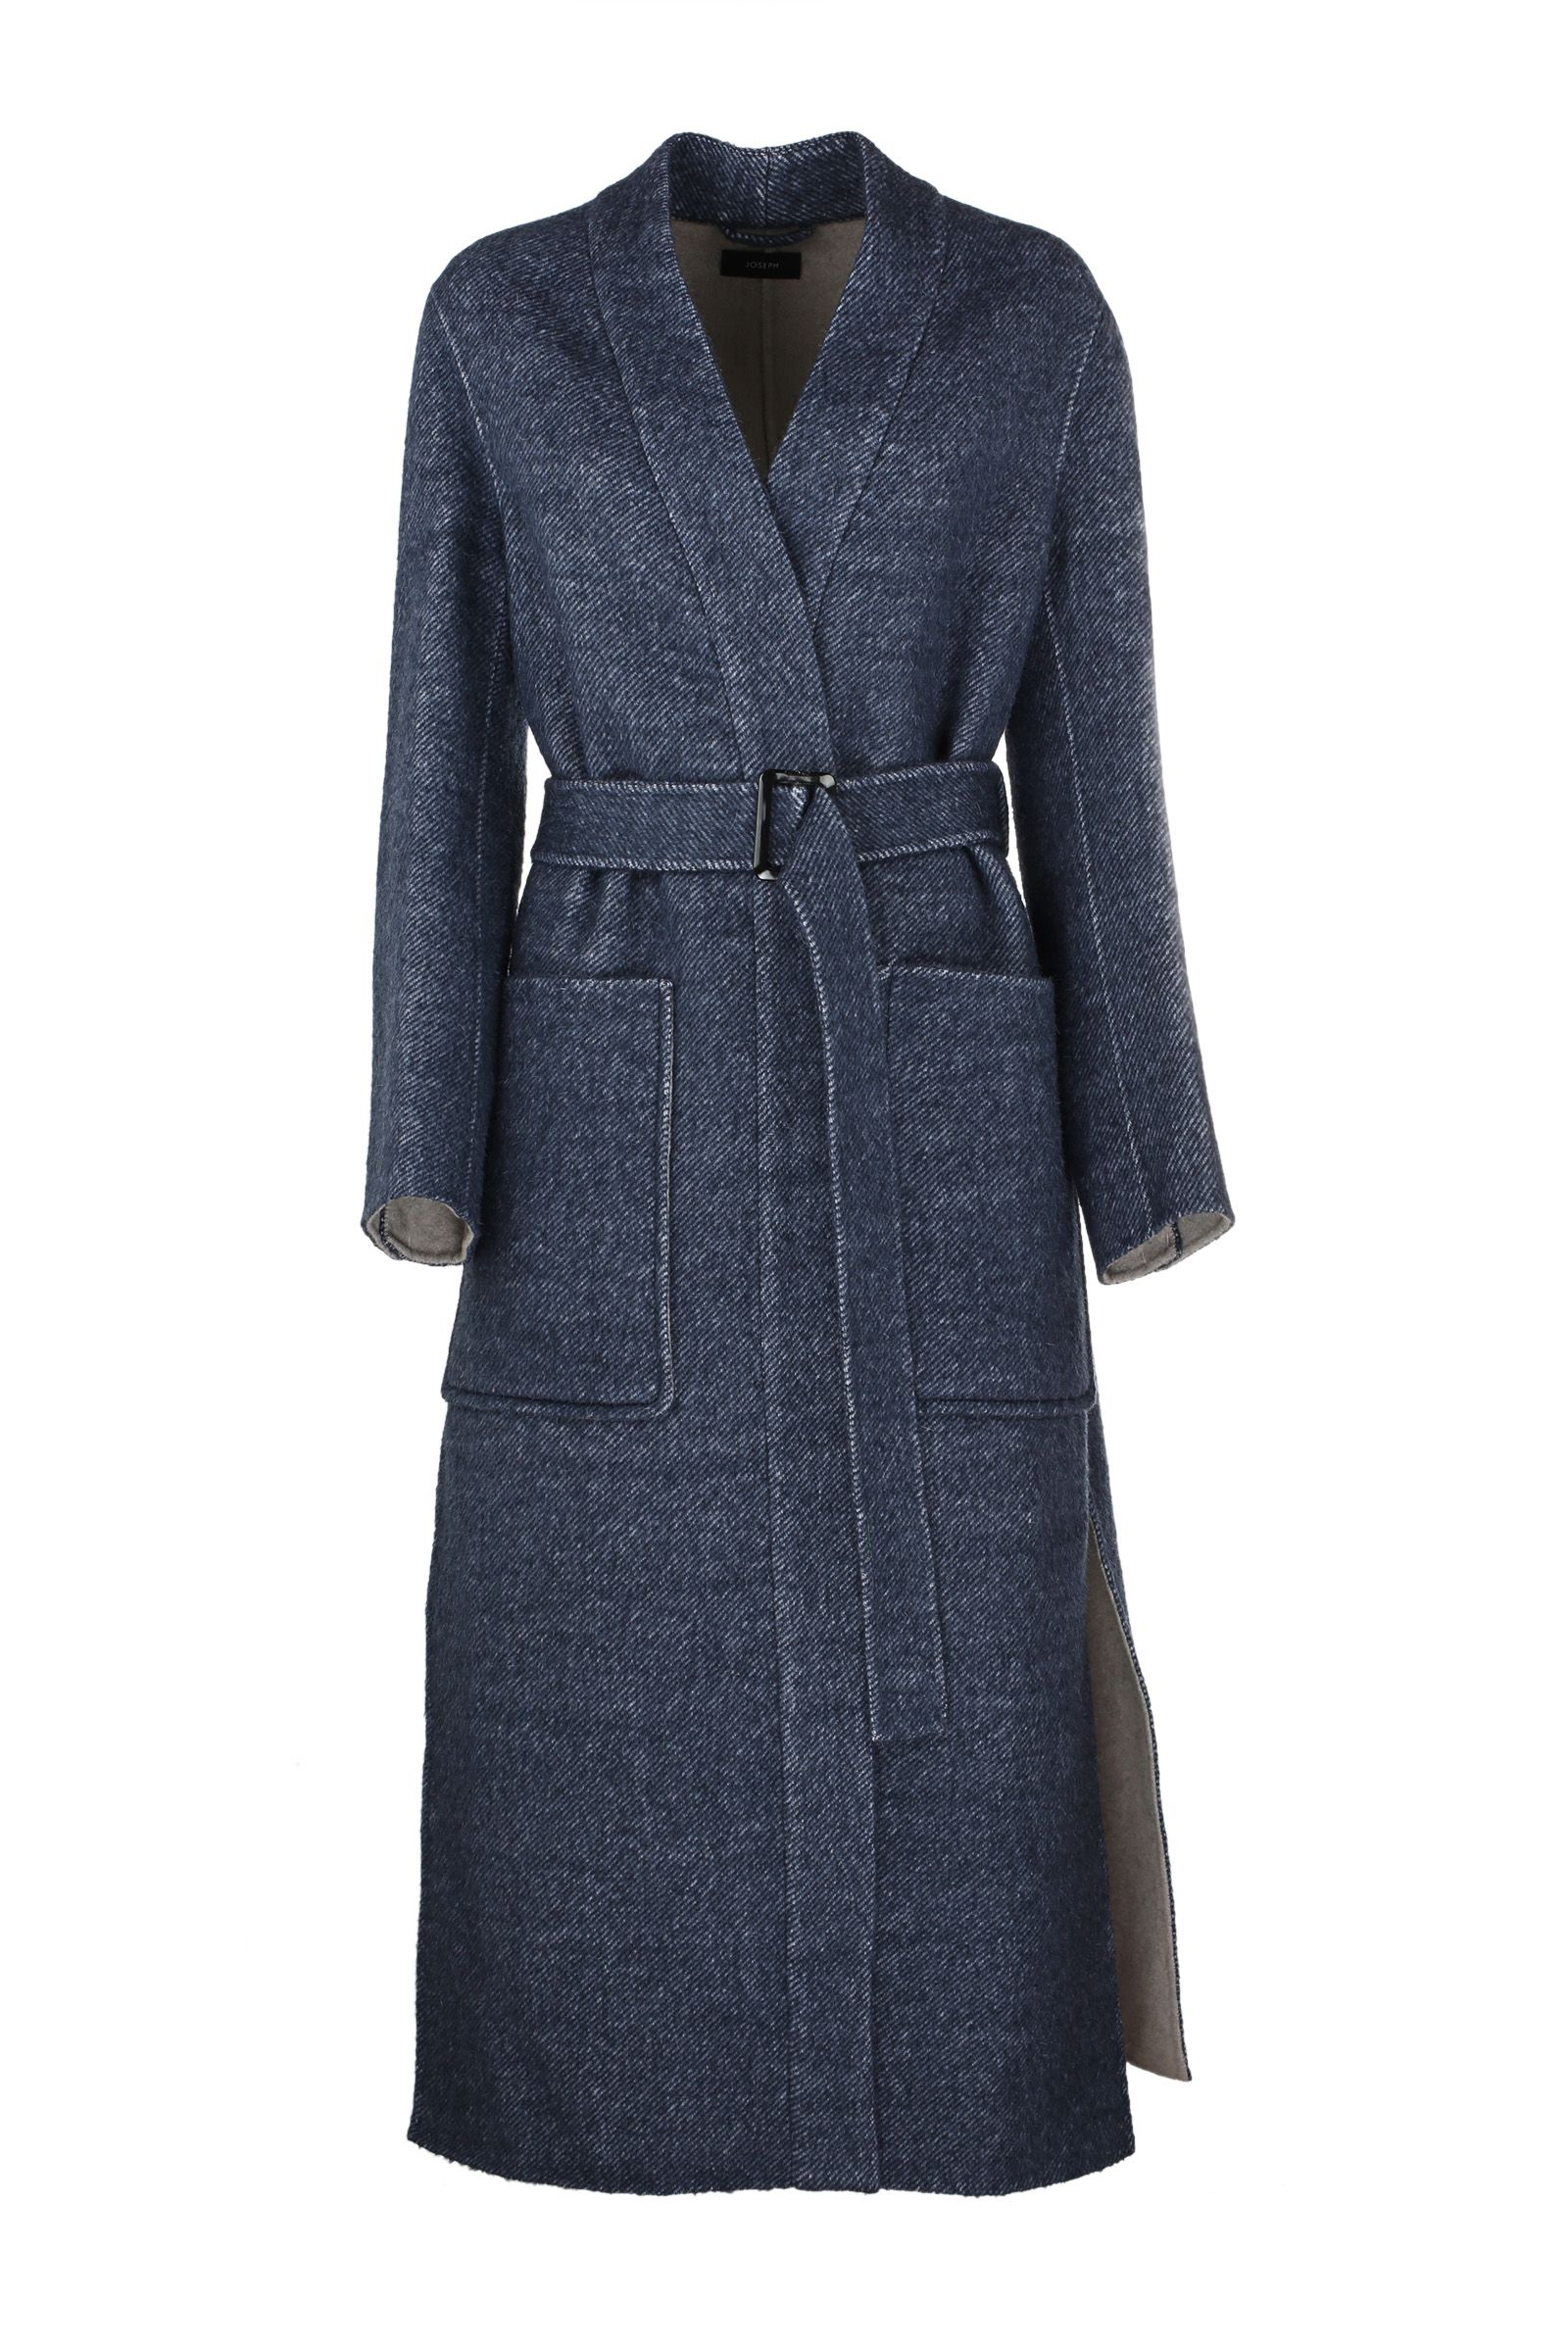 Joseph - Joseph Tailored Fitted Coat - Blue, Women's Coats ...